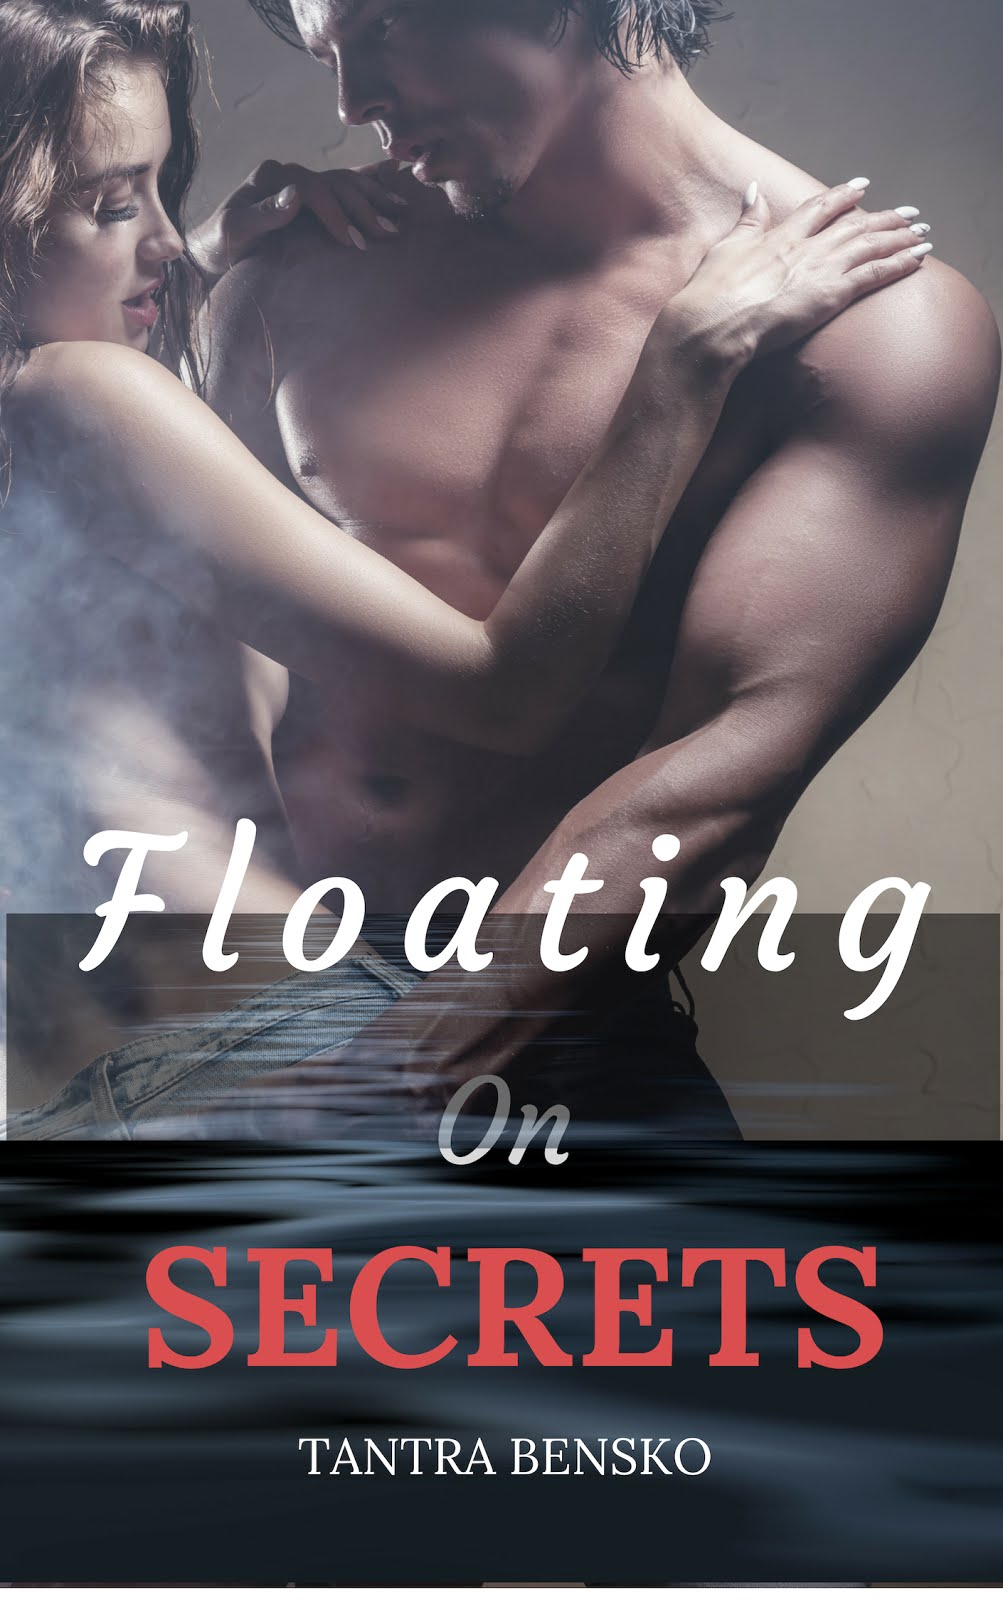 Floating on Secrects